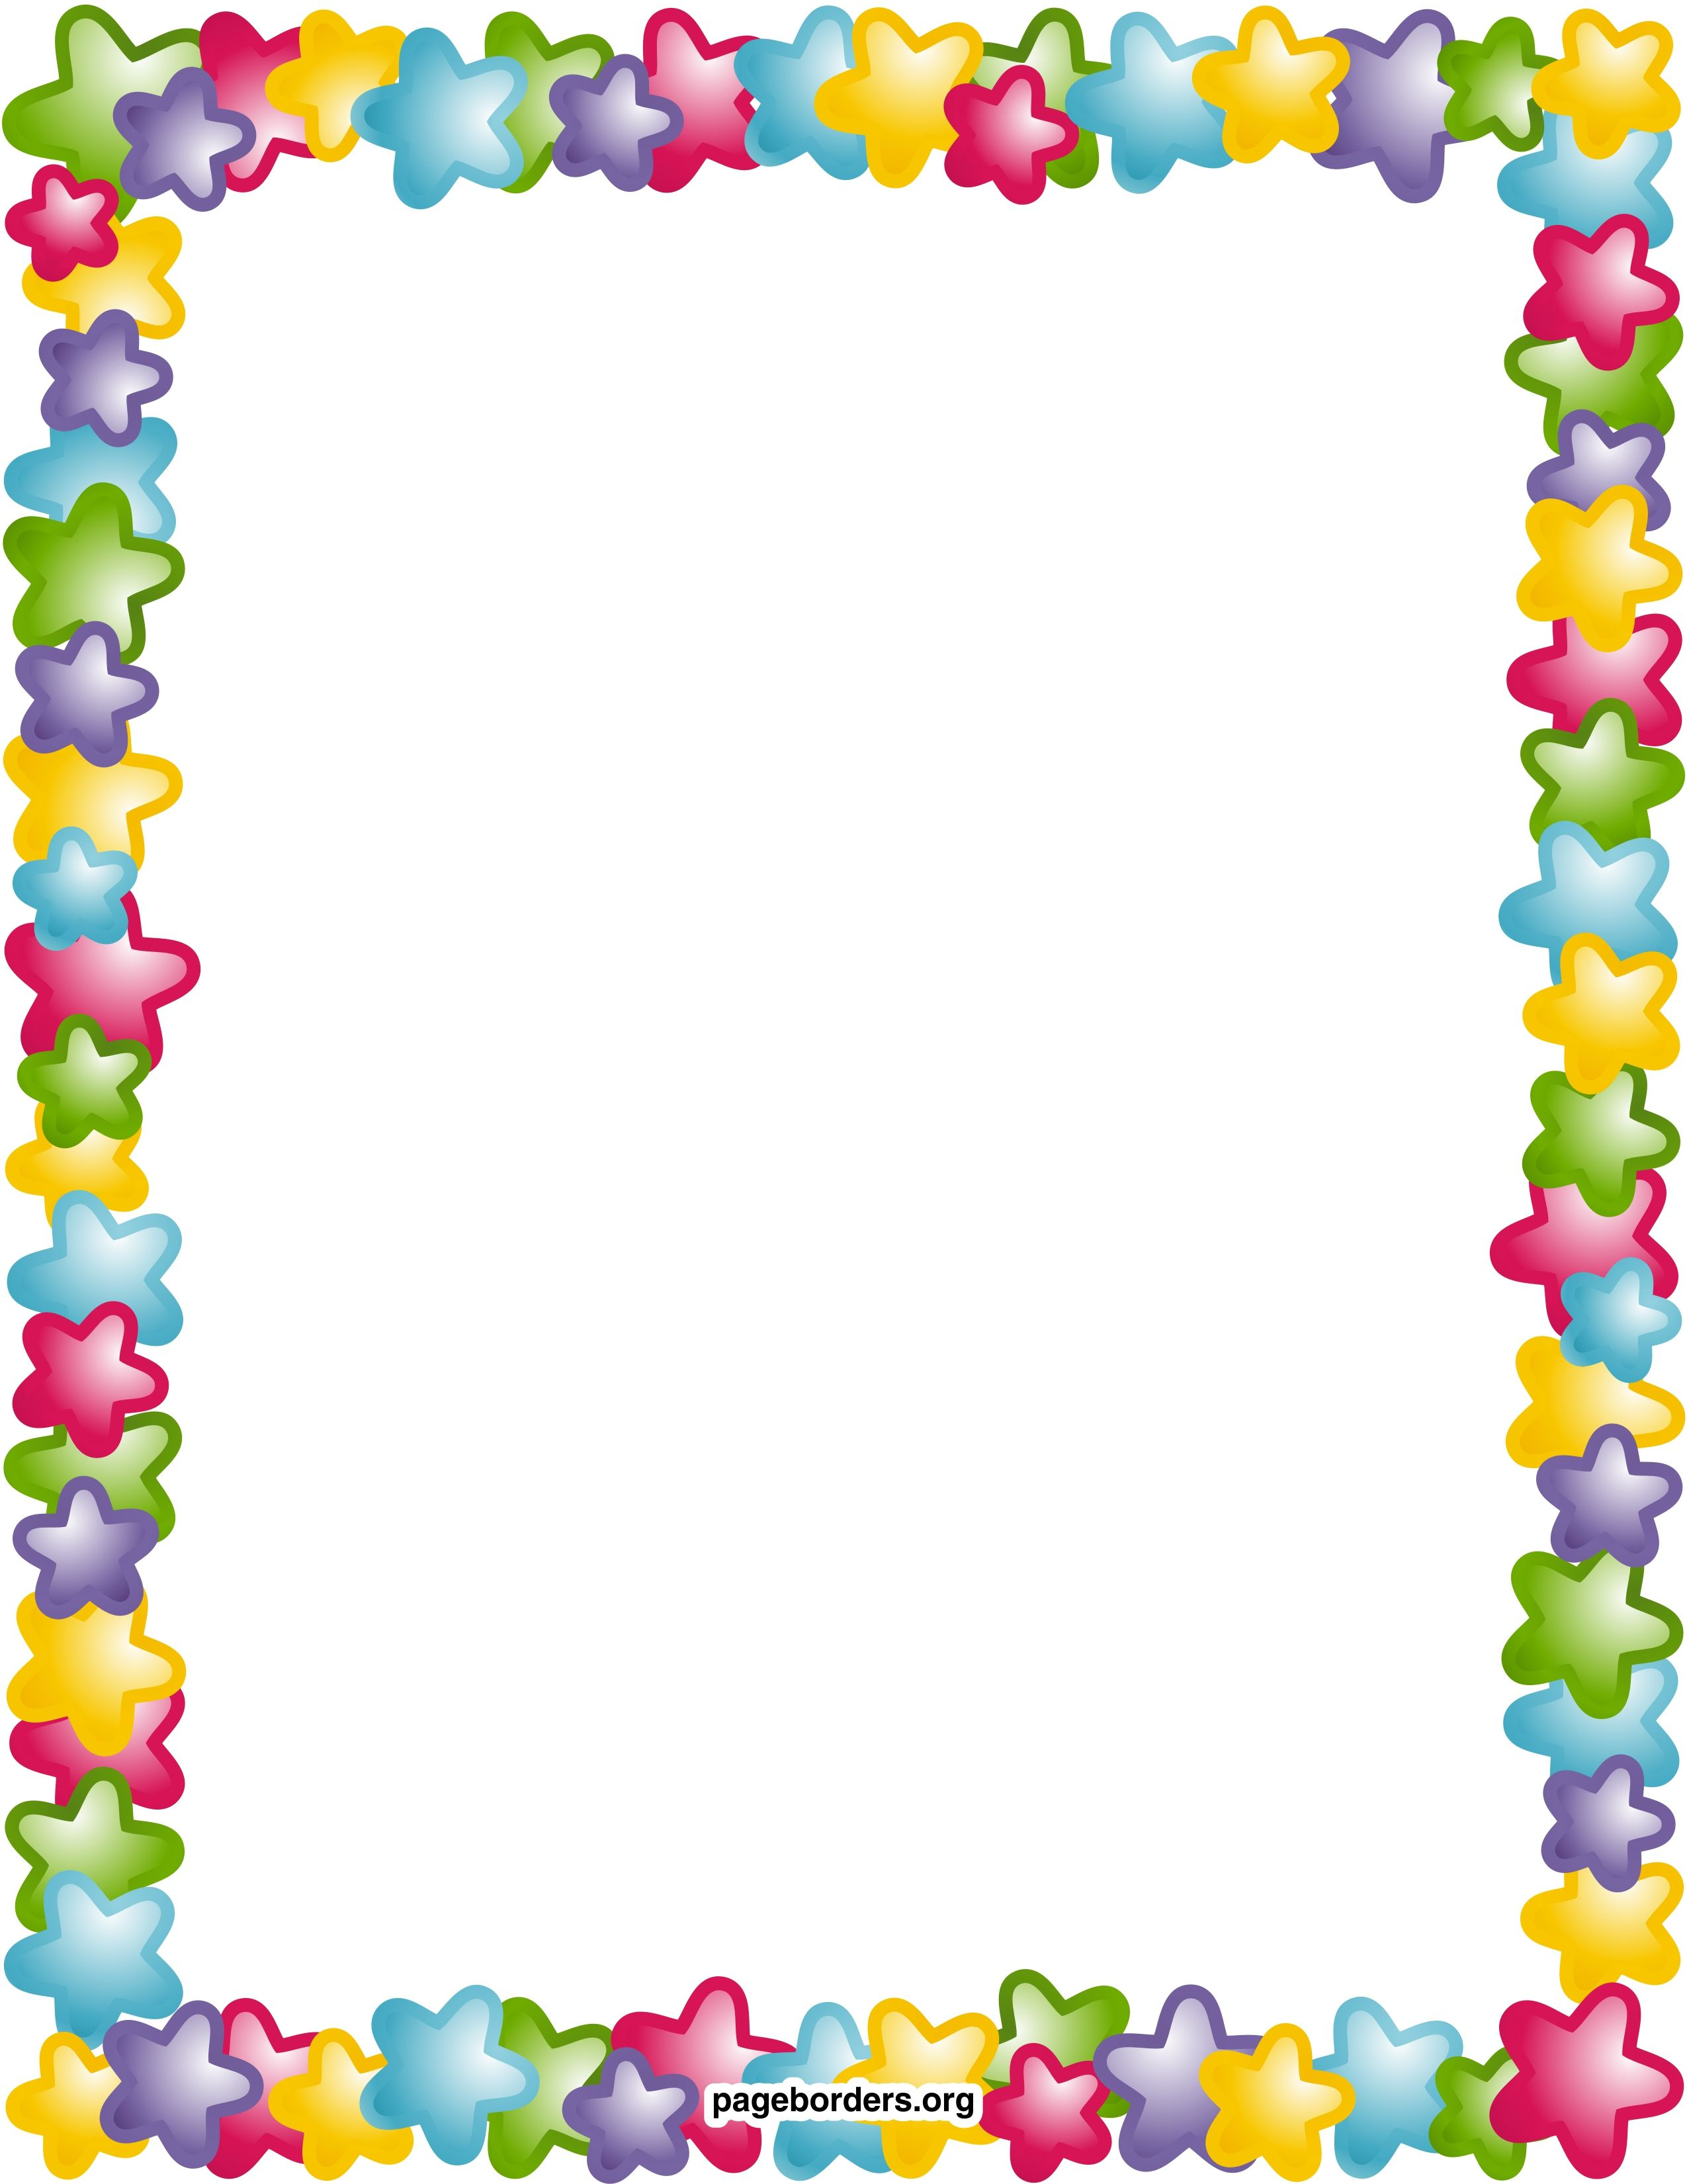 Free Printable Page Borders And Frames Image Gallery ...